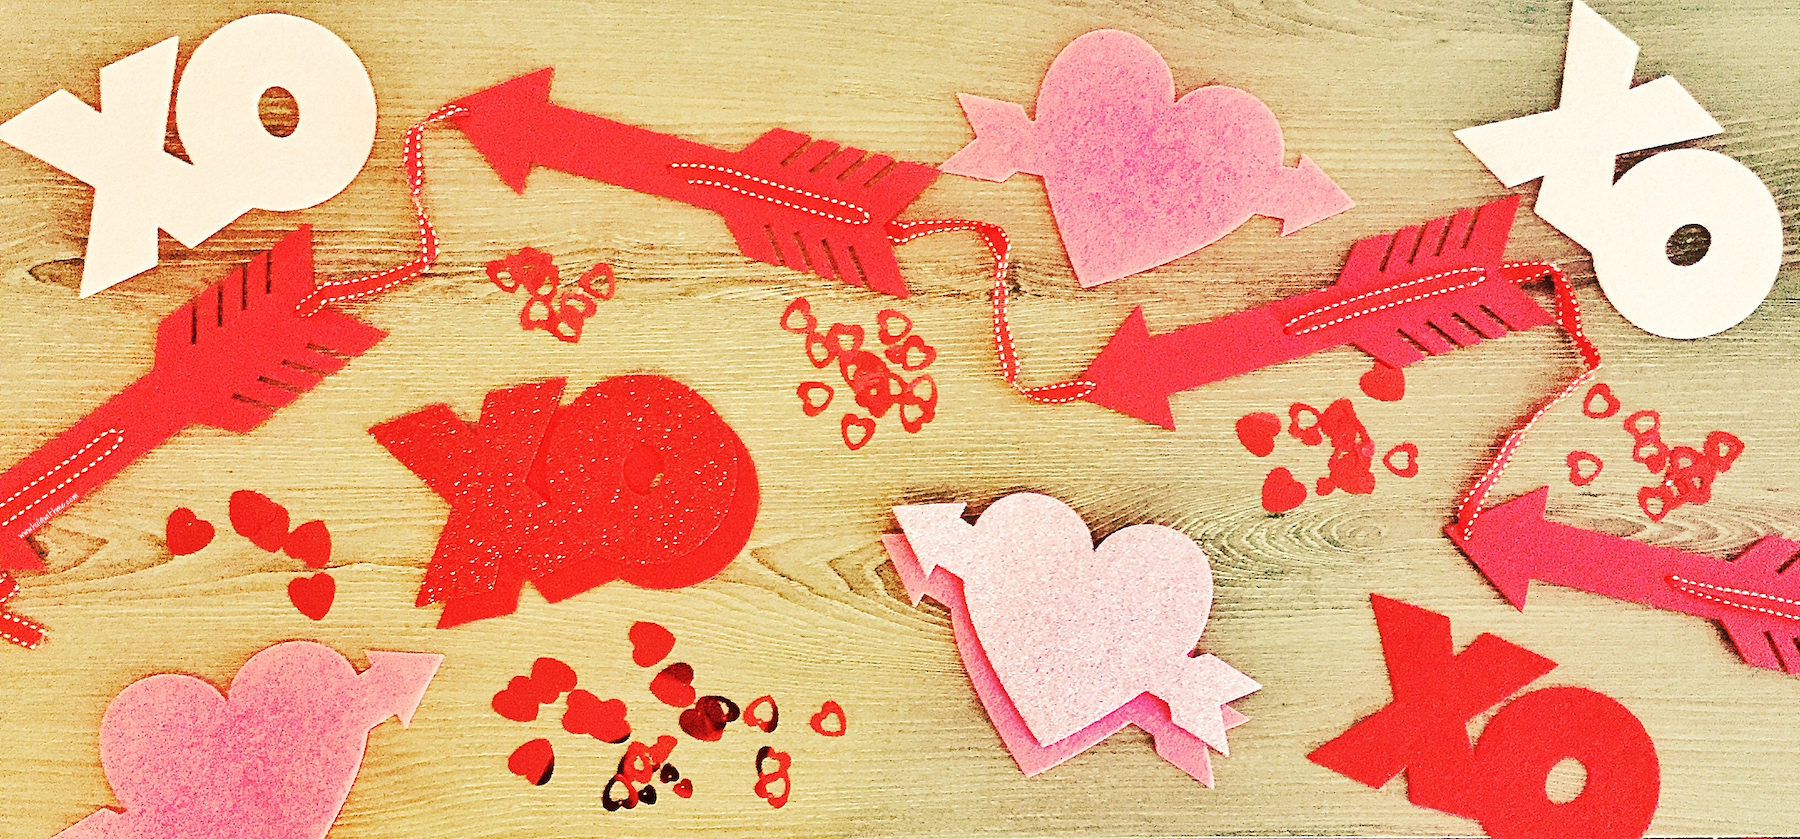 5 Valentine's Day gifts that work for both him and her.